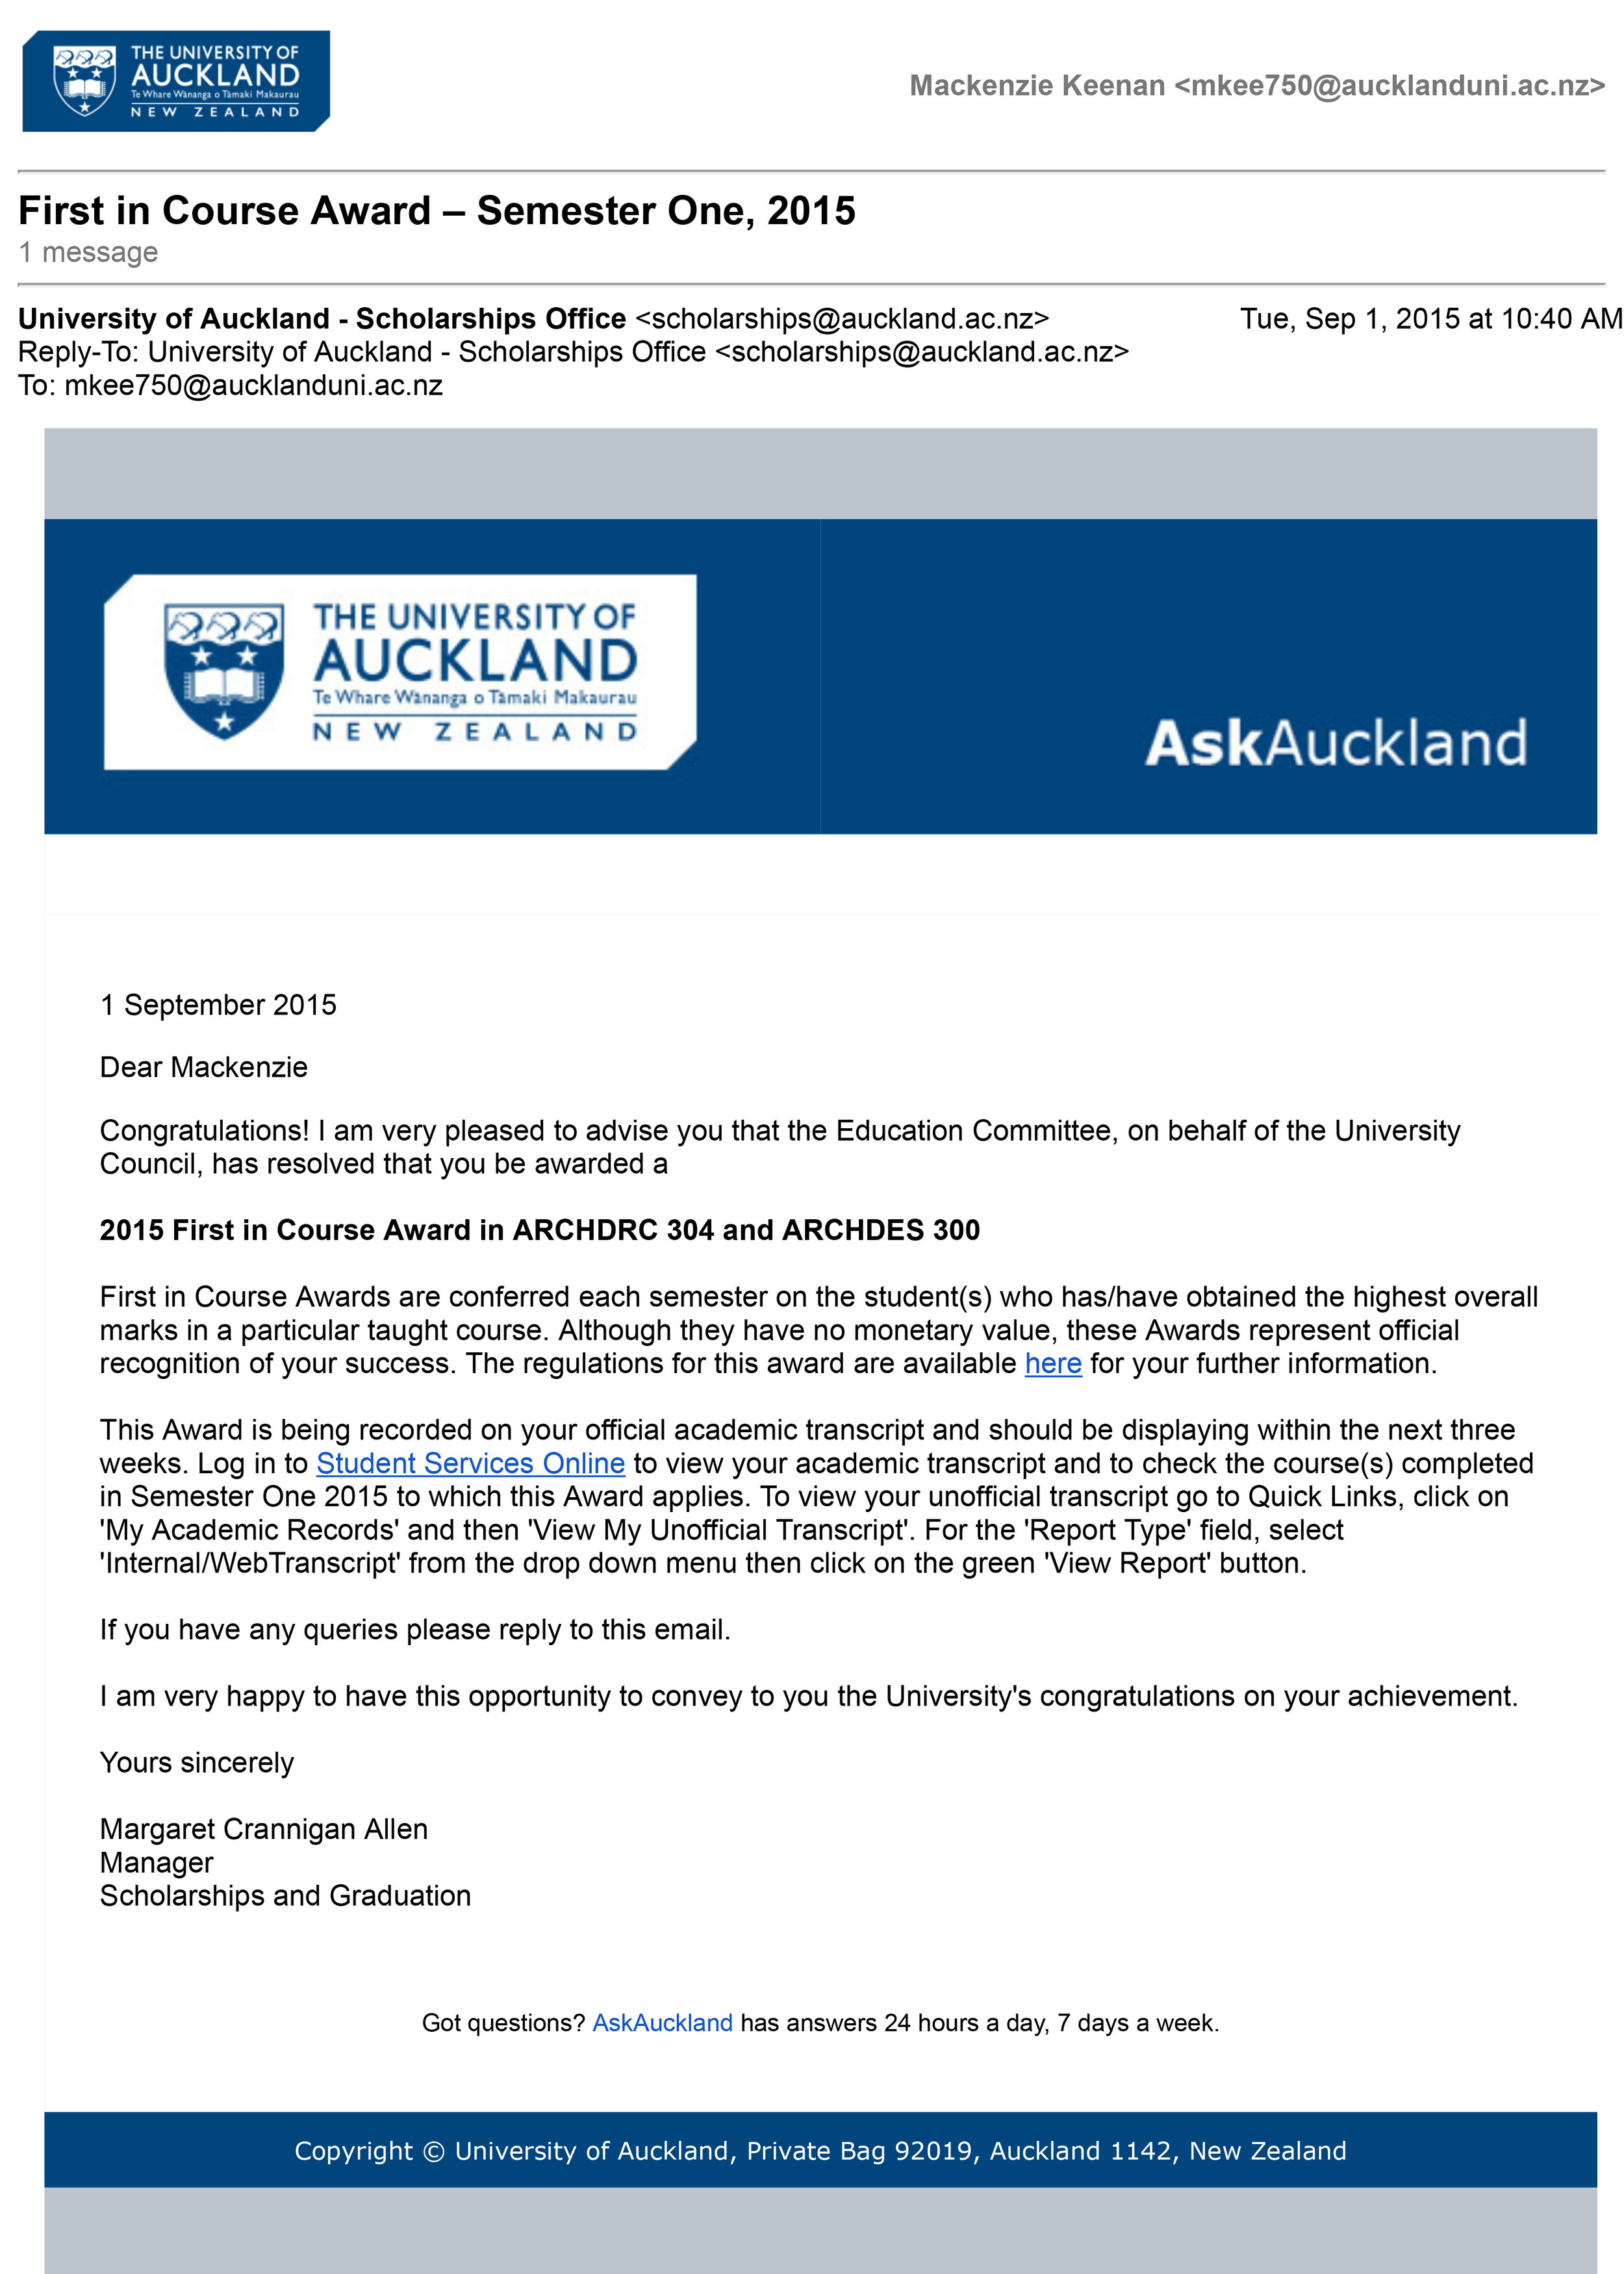 The University of Auckland Mail - First in Course Award – Semester One, 2015-1.jpg